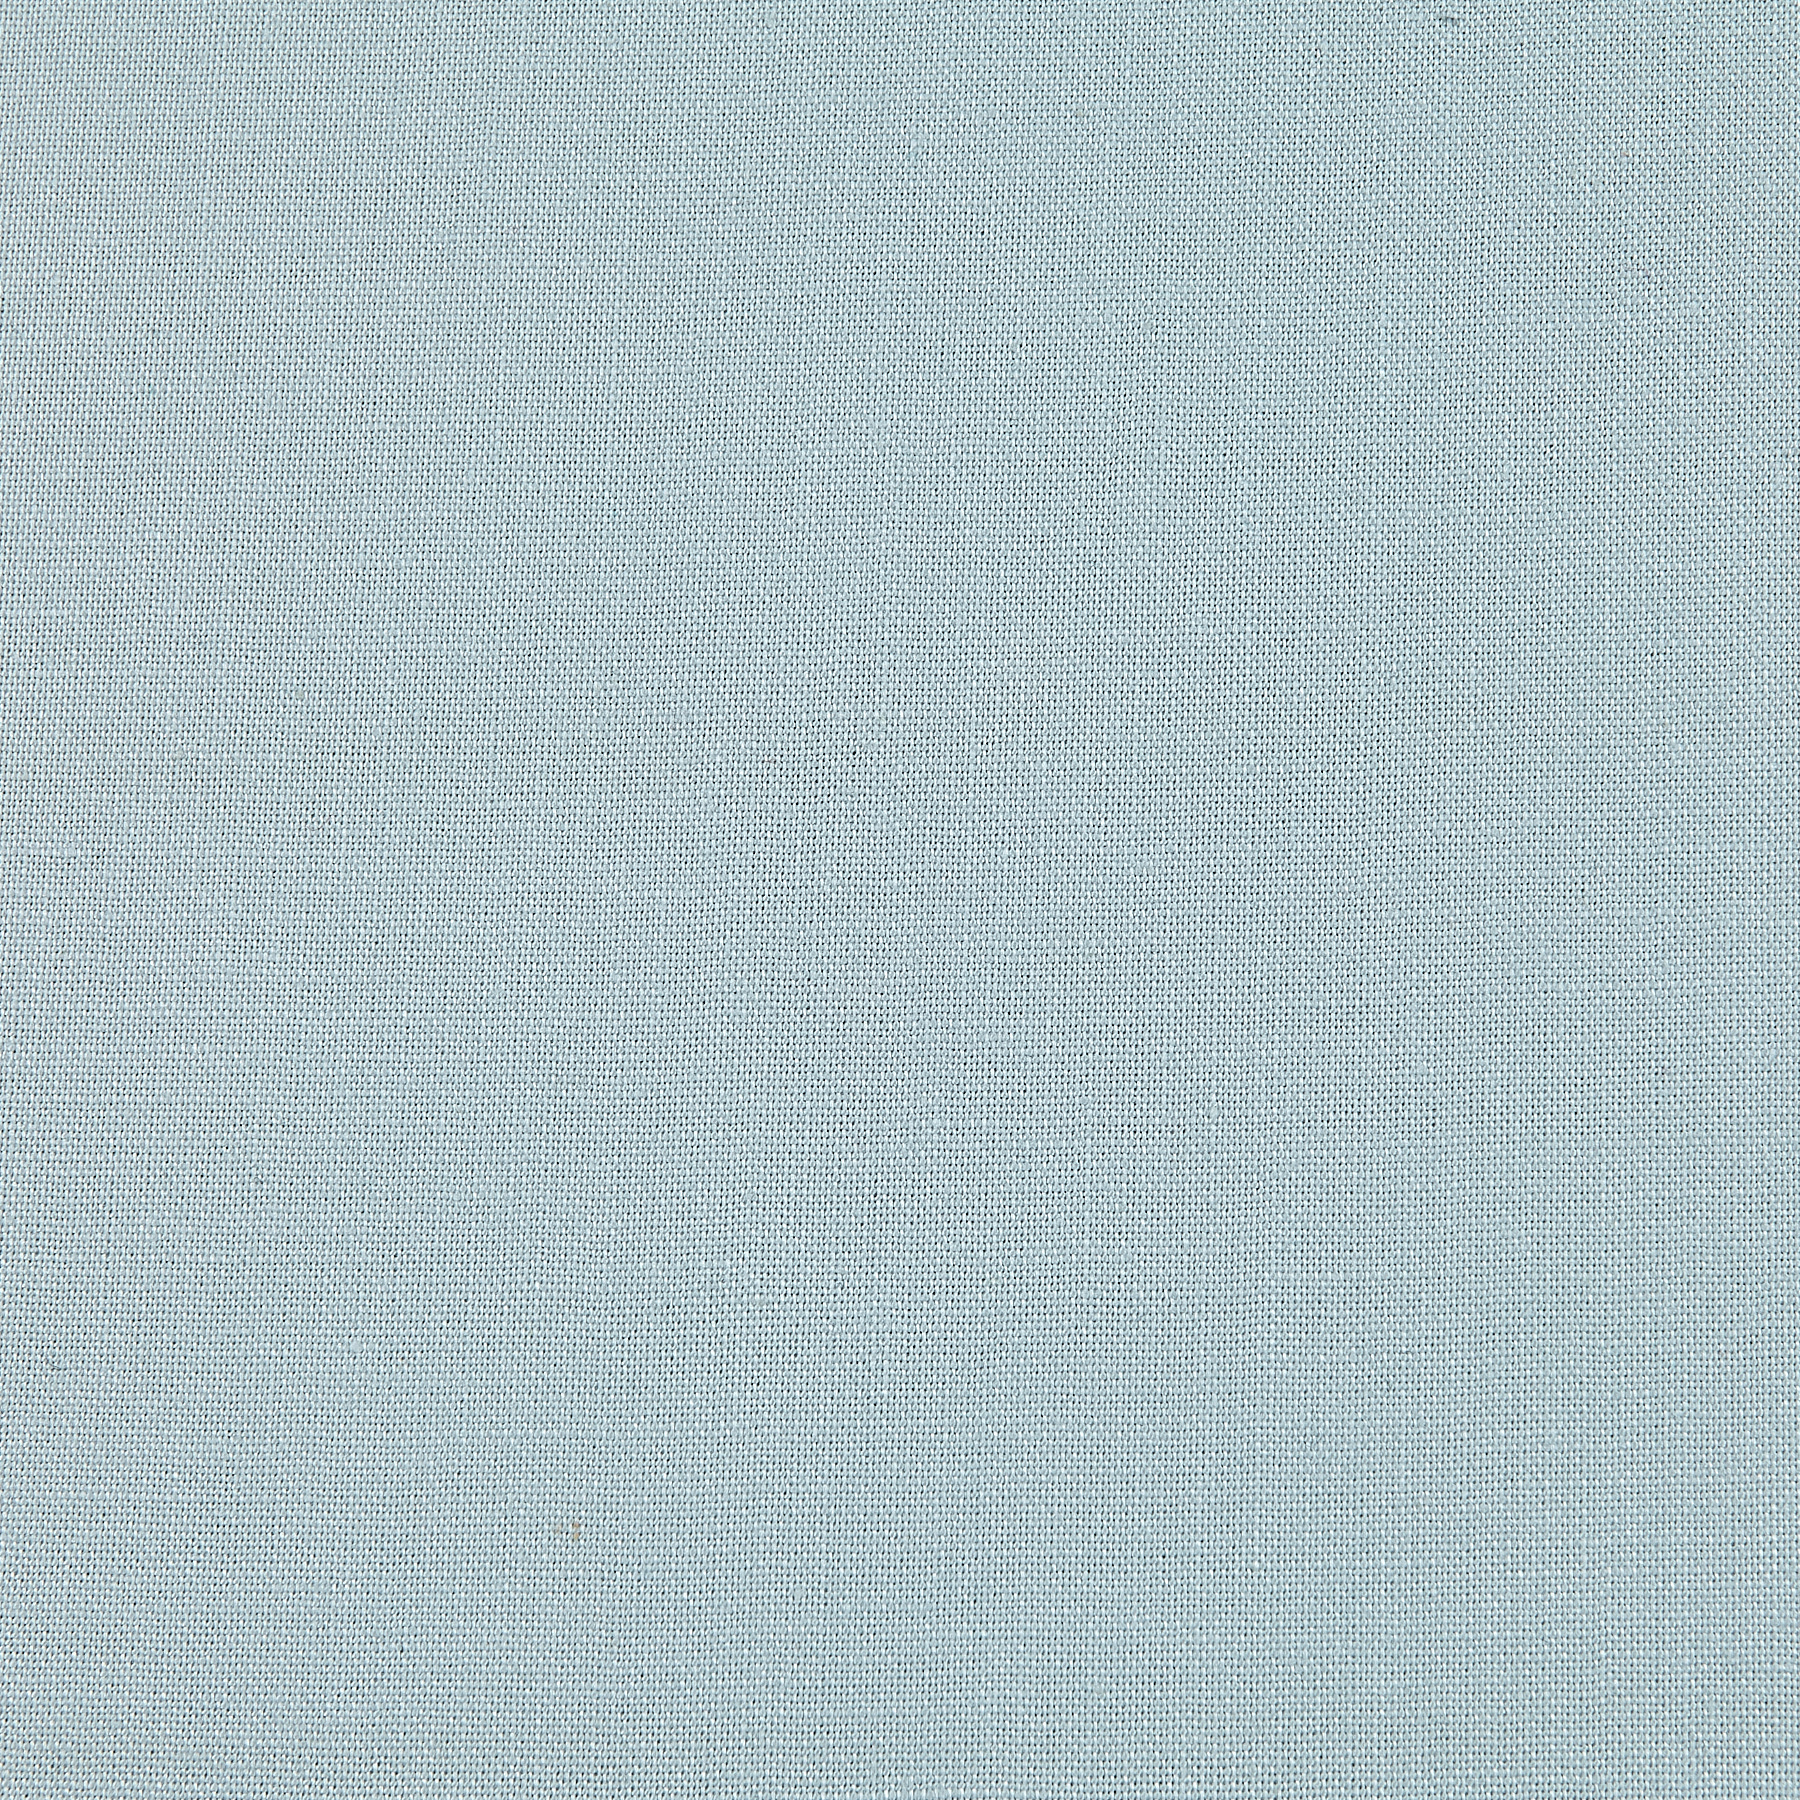 Kona Cotton Sky Fabric